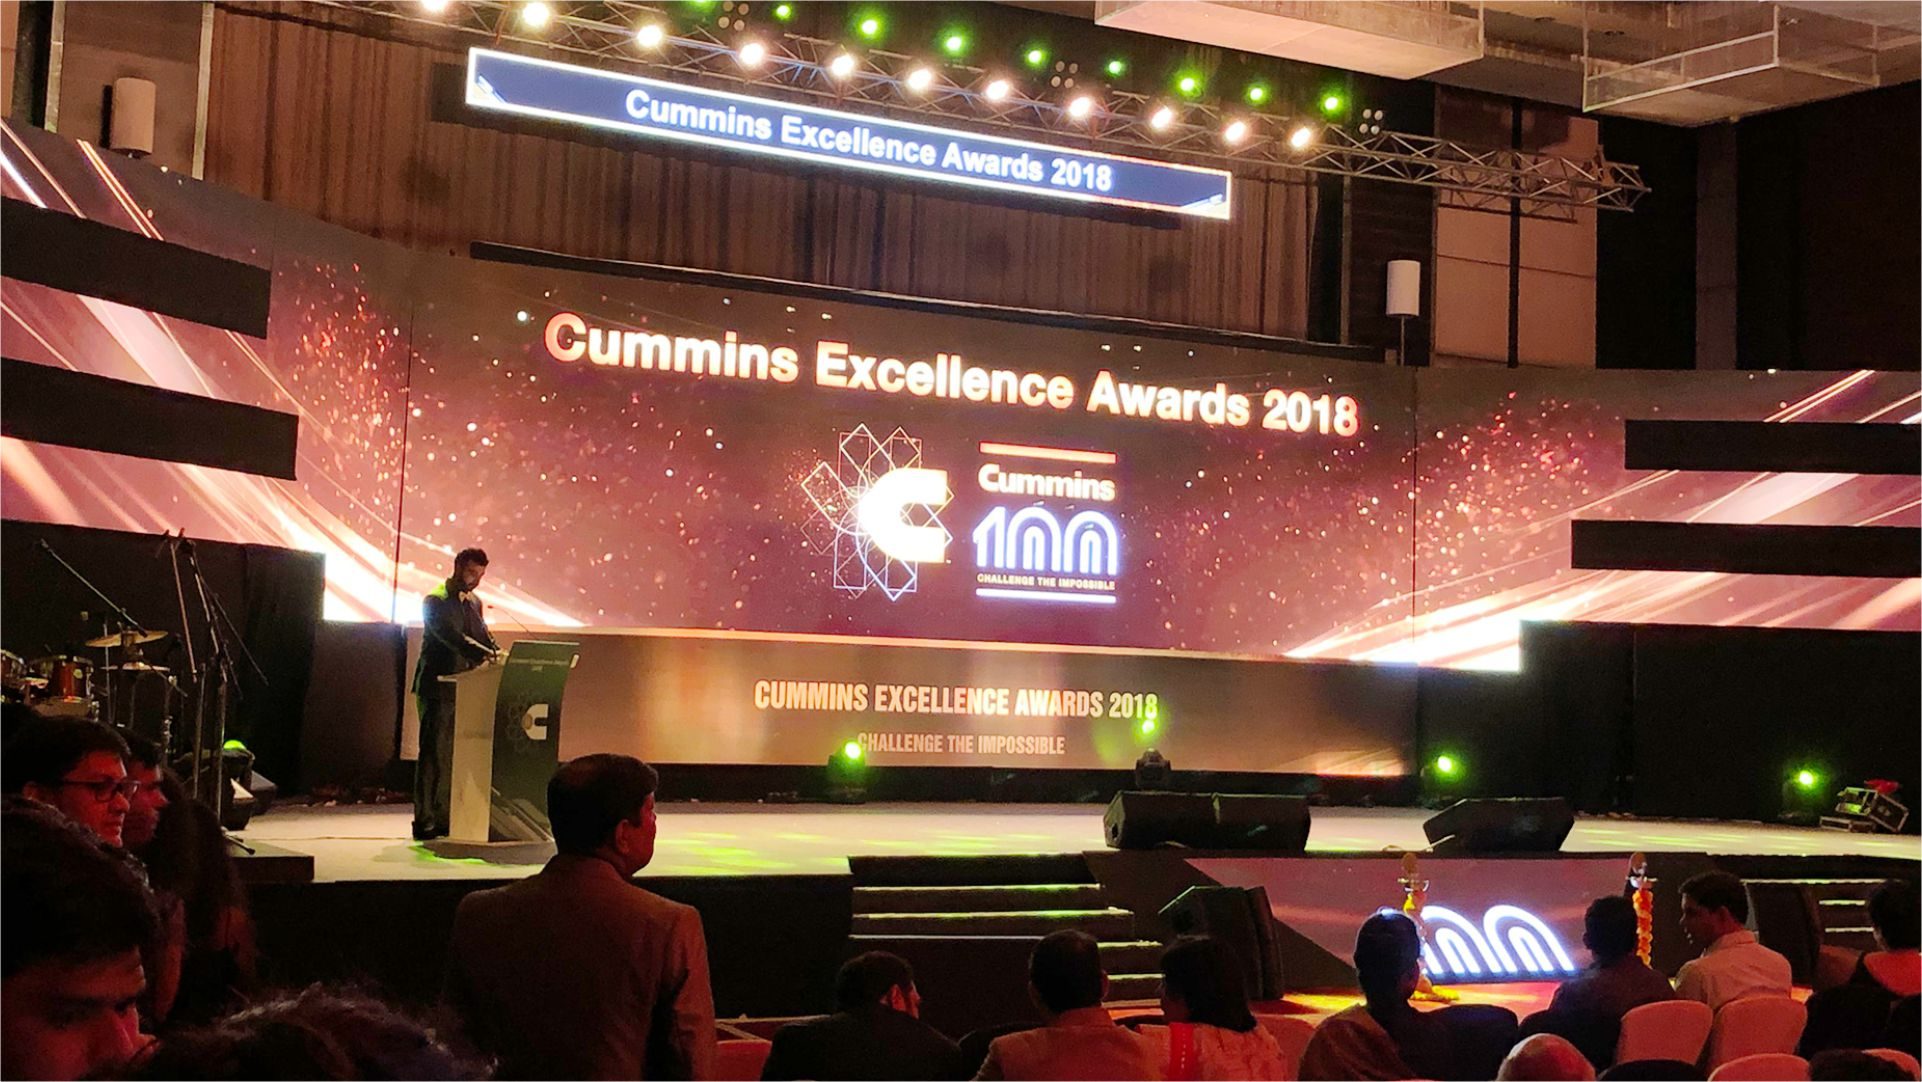 Cummins Excellence Awards